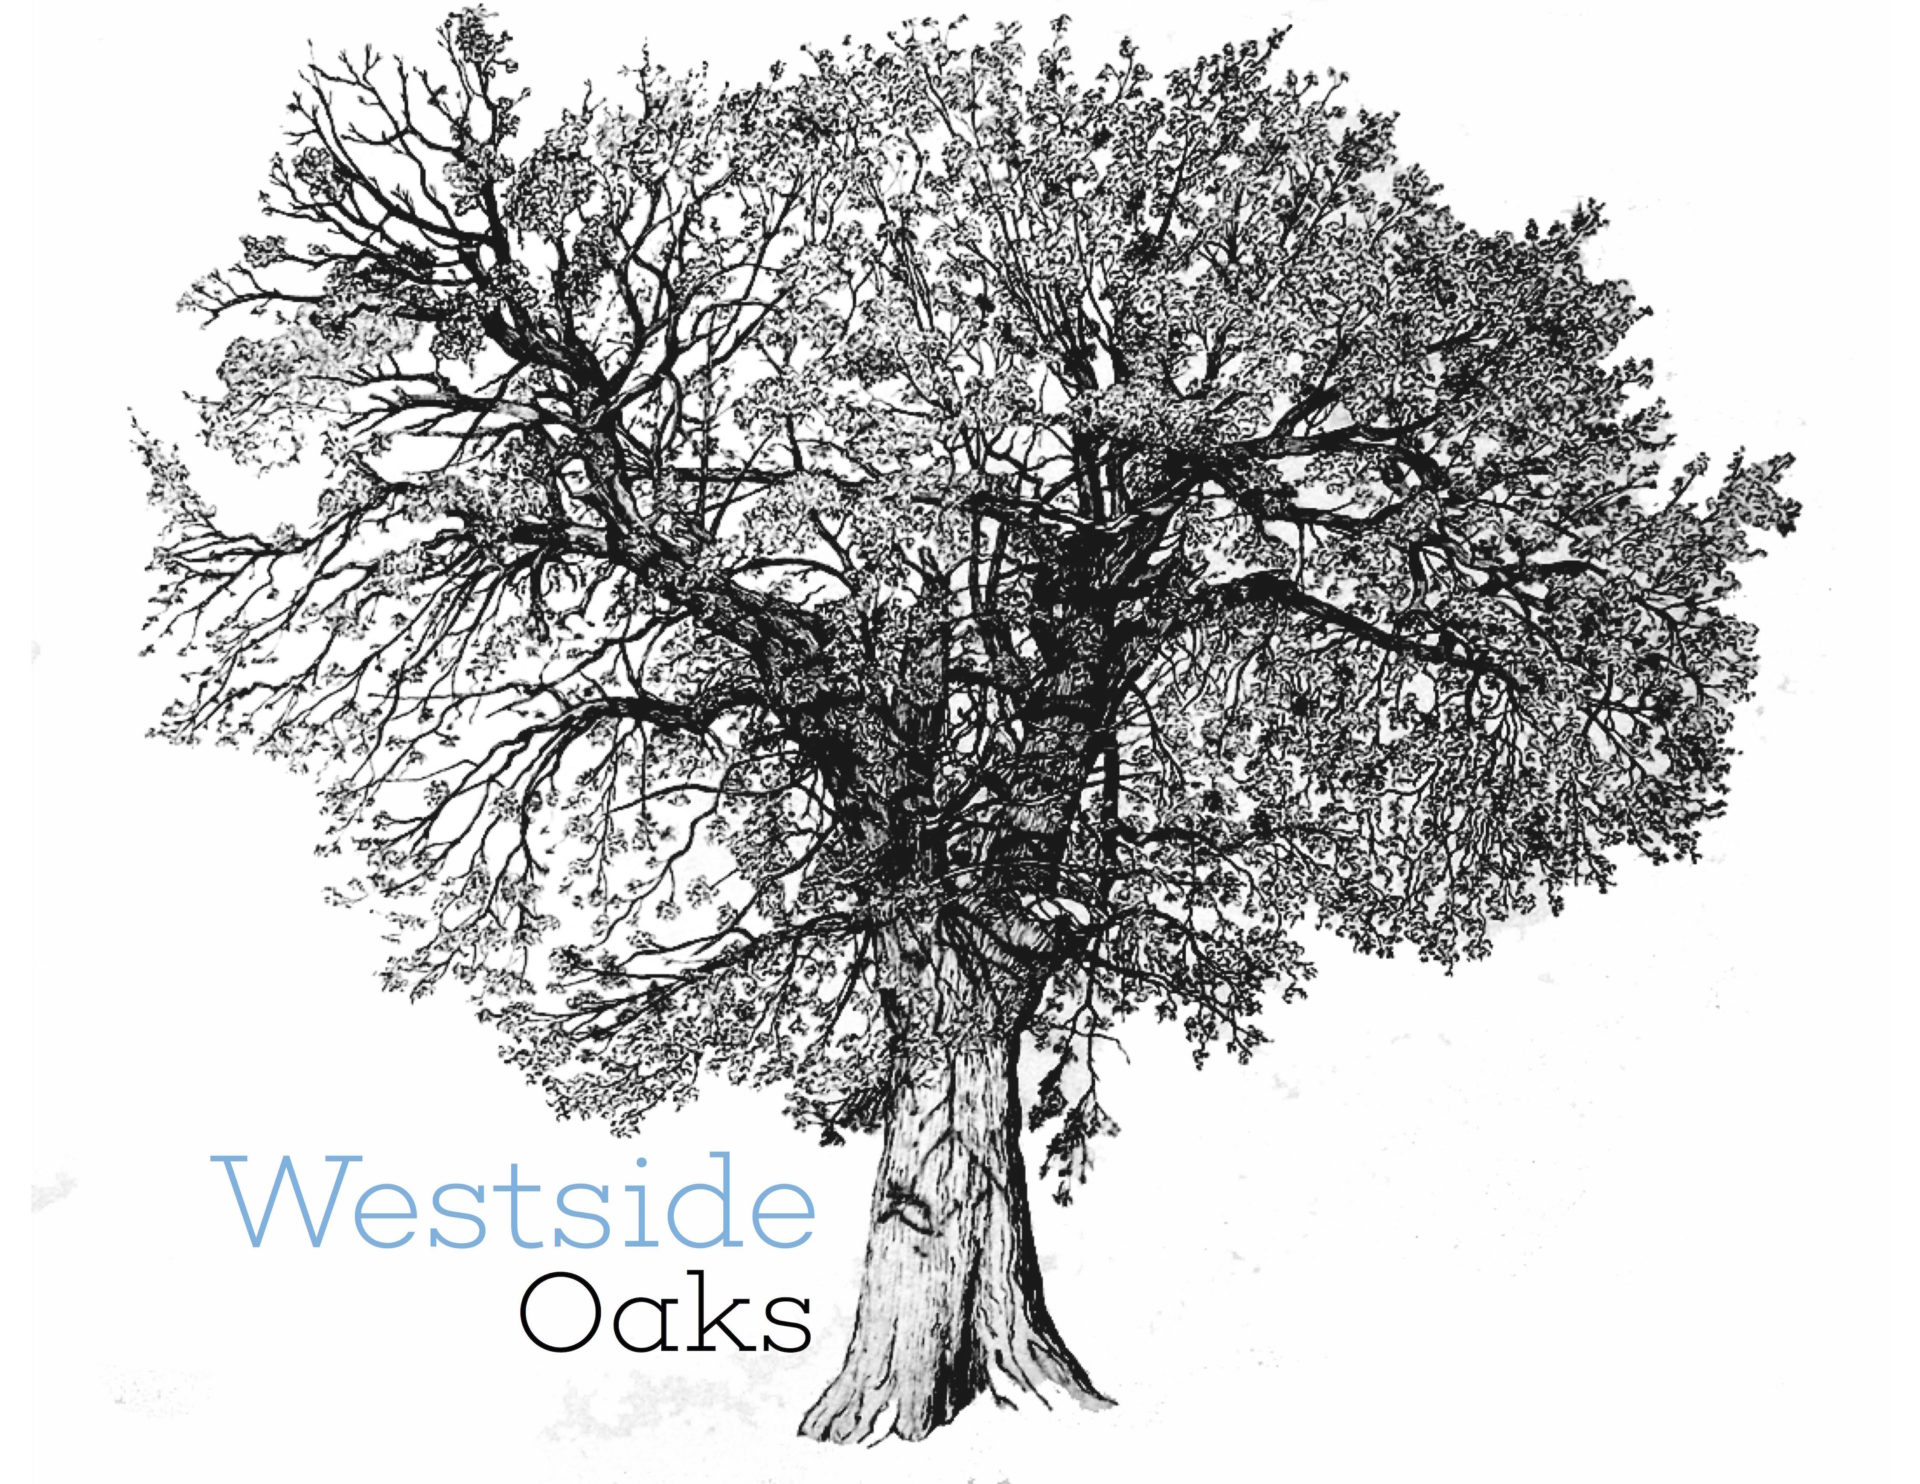 Westside Oaks